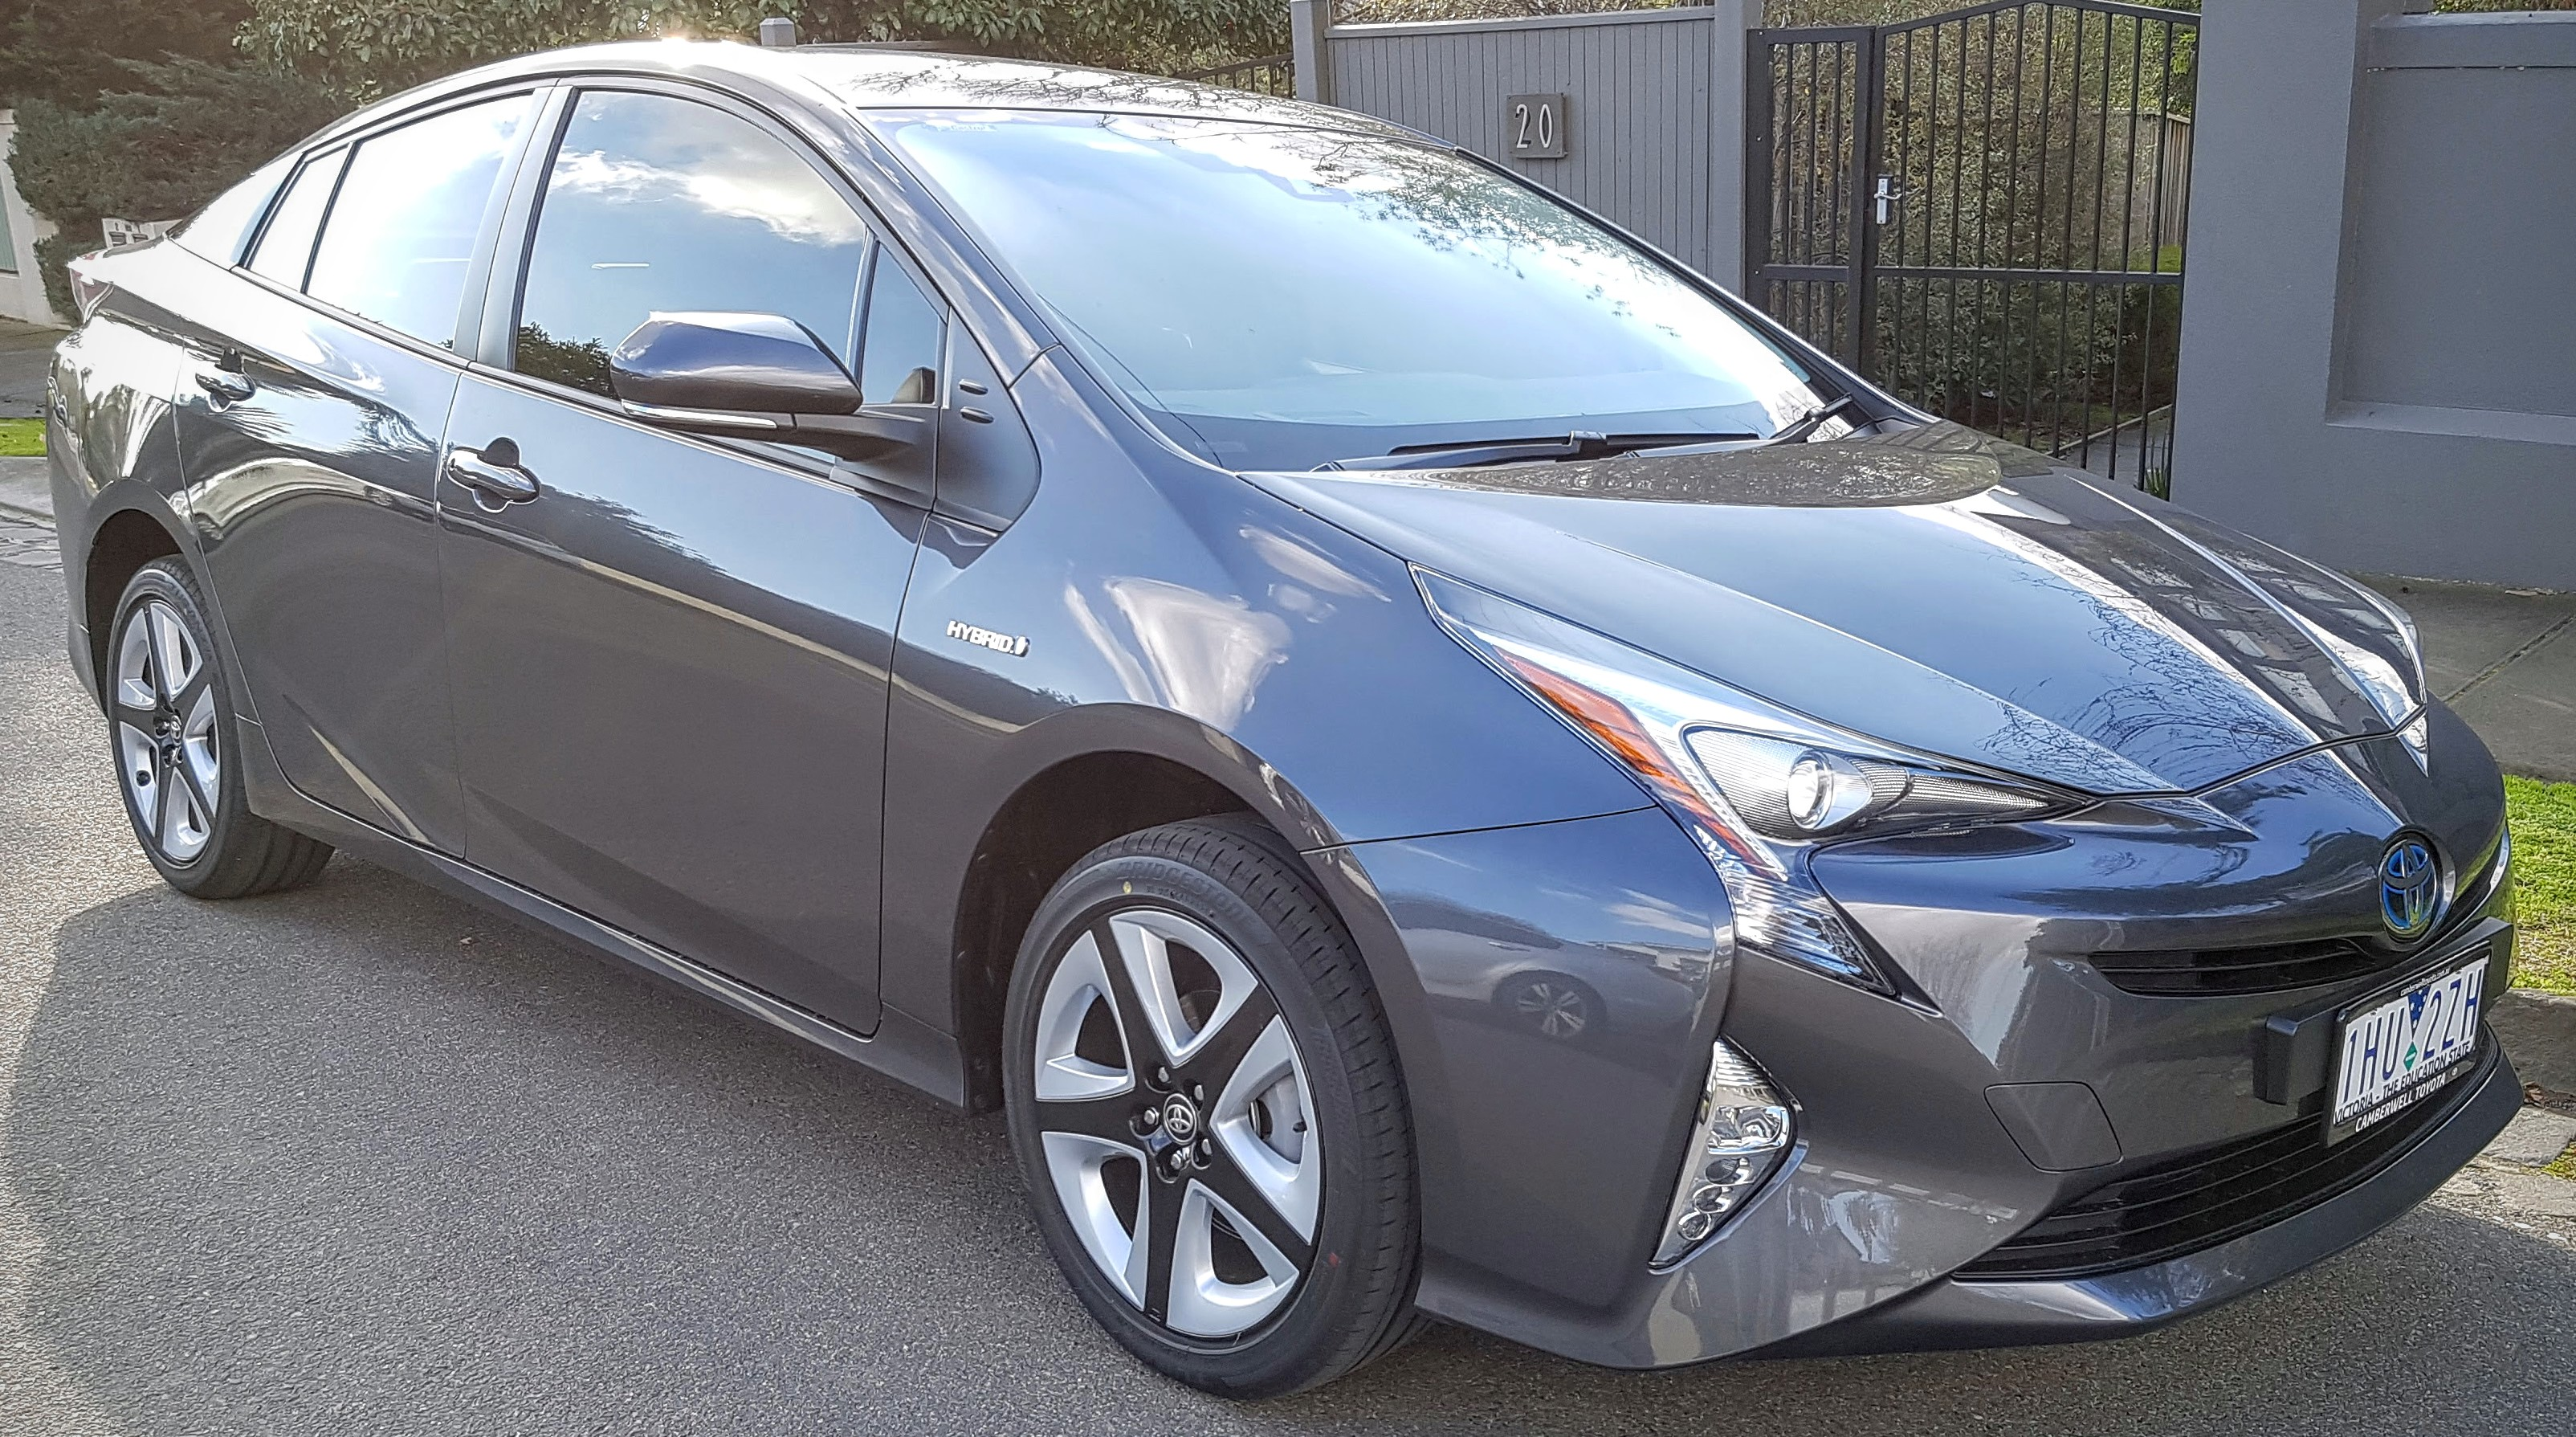 Picture of Edgar's 2016 Toyota Prius i-Tech